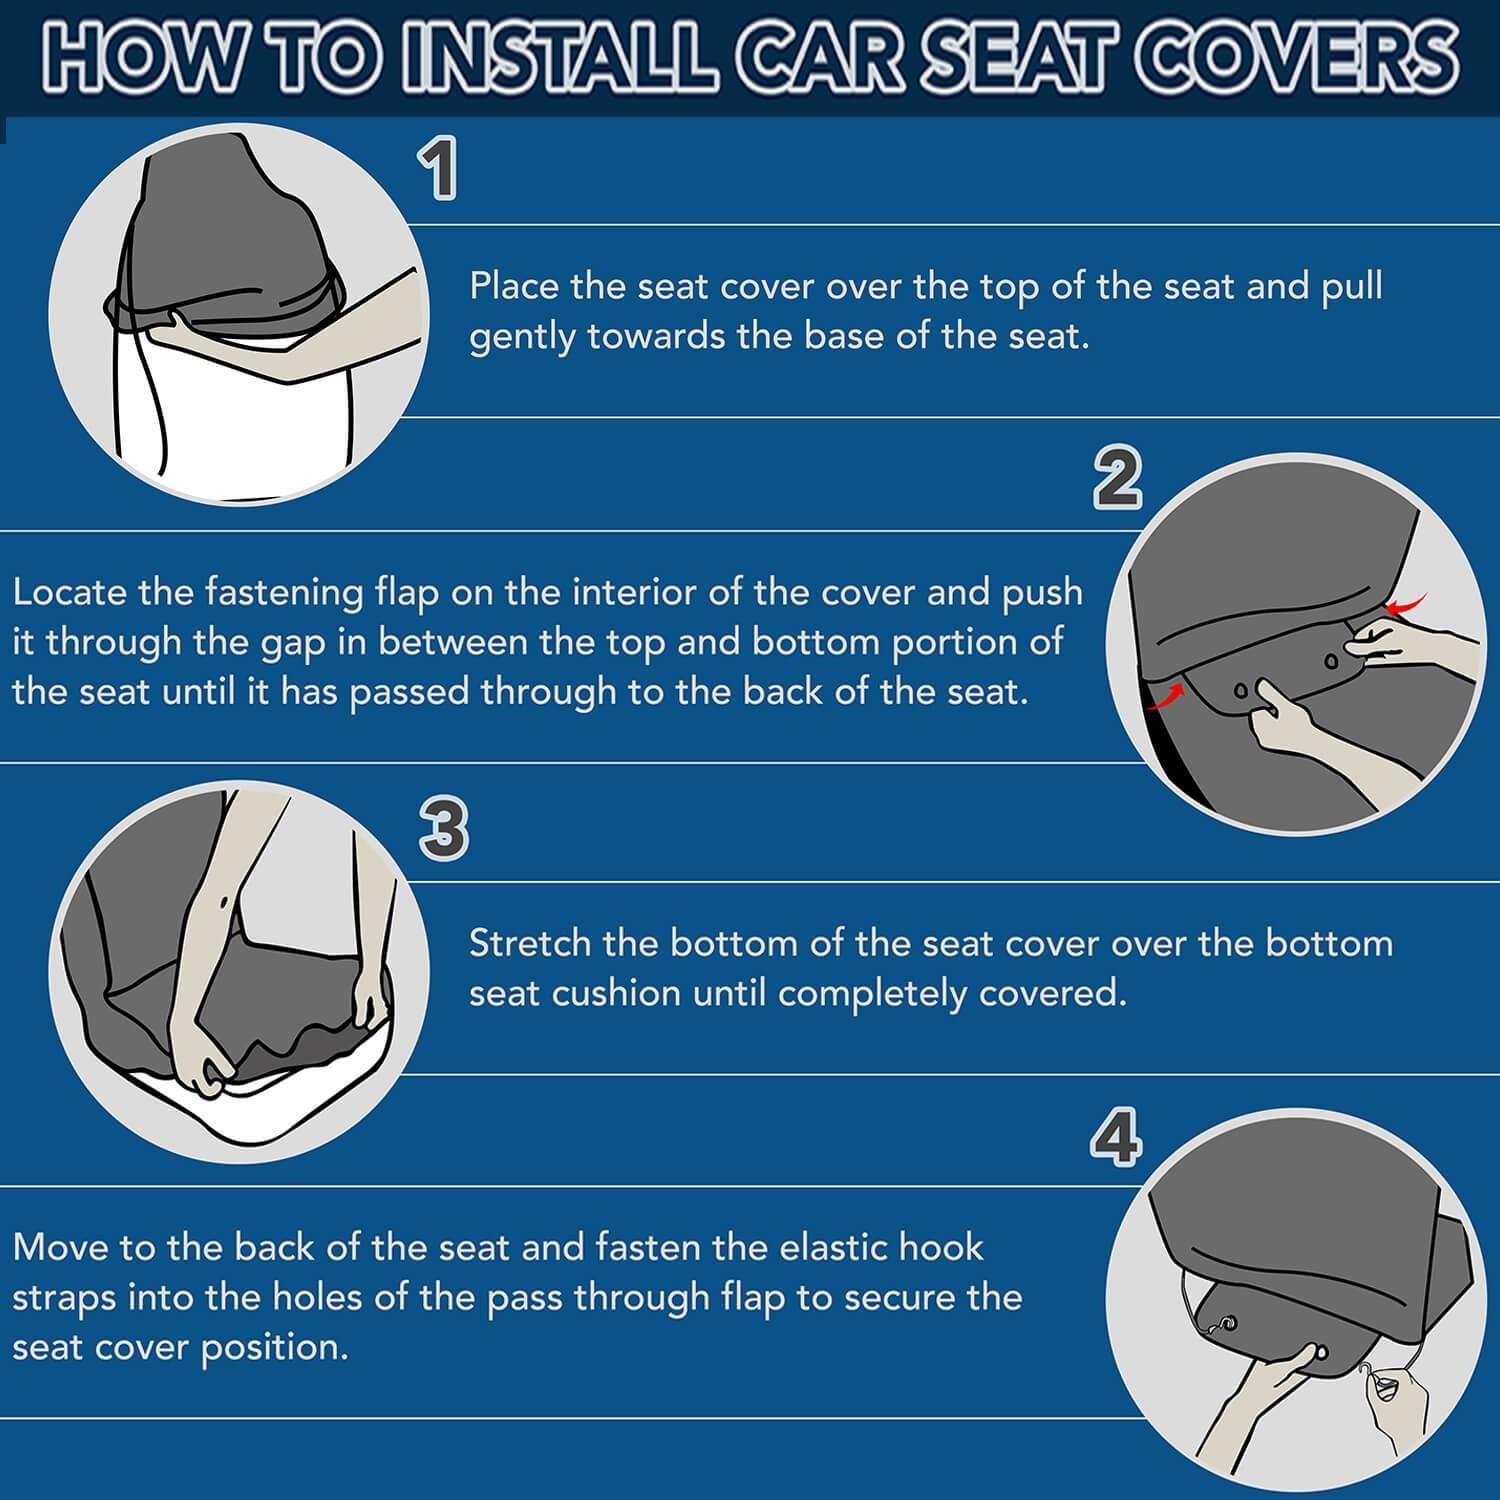 WonderBlackGirl Car Seat Covers Installation Guide - How To Install